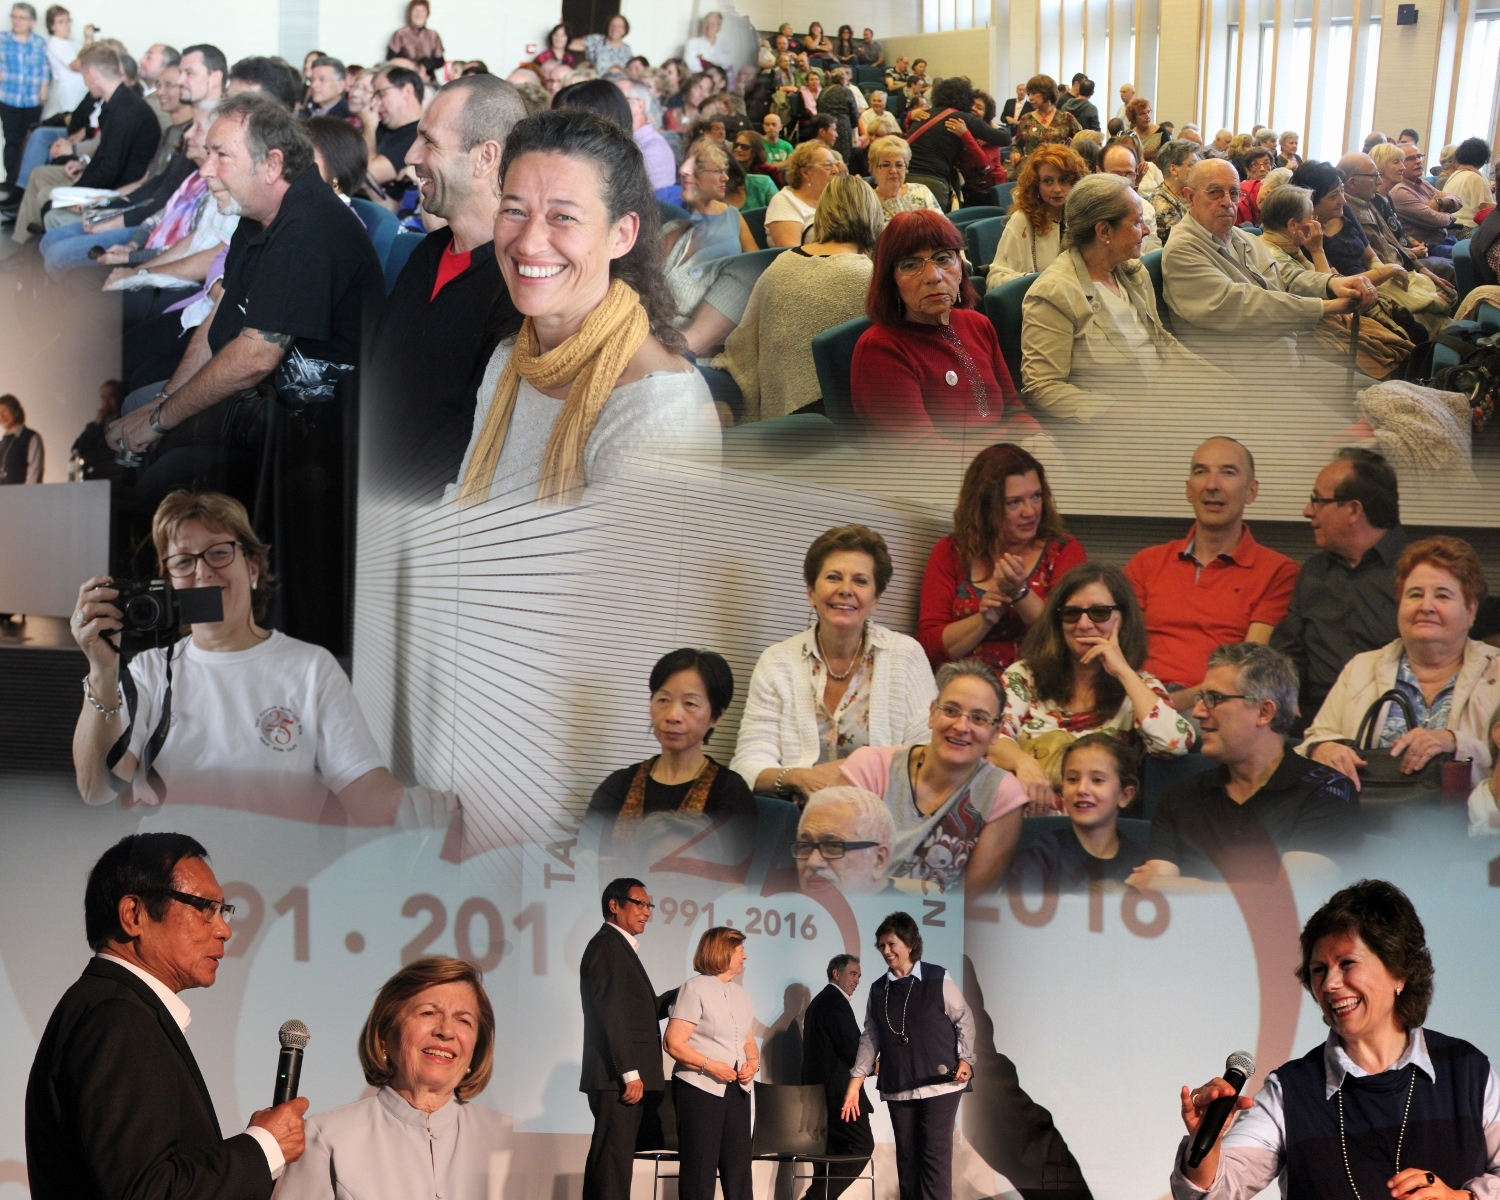 IMG_7942 Collage